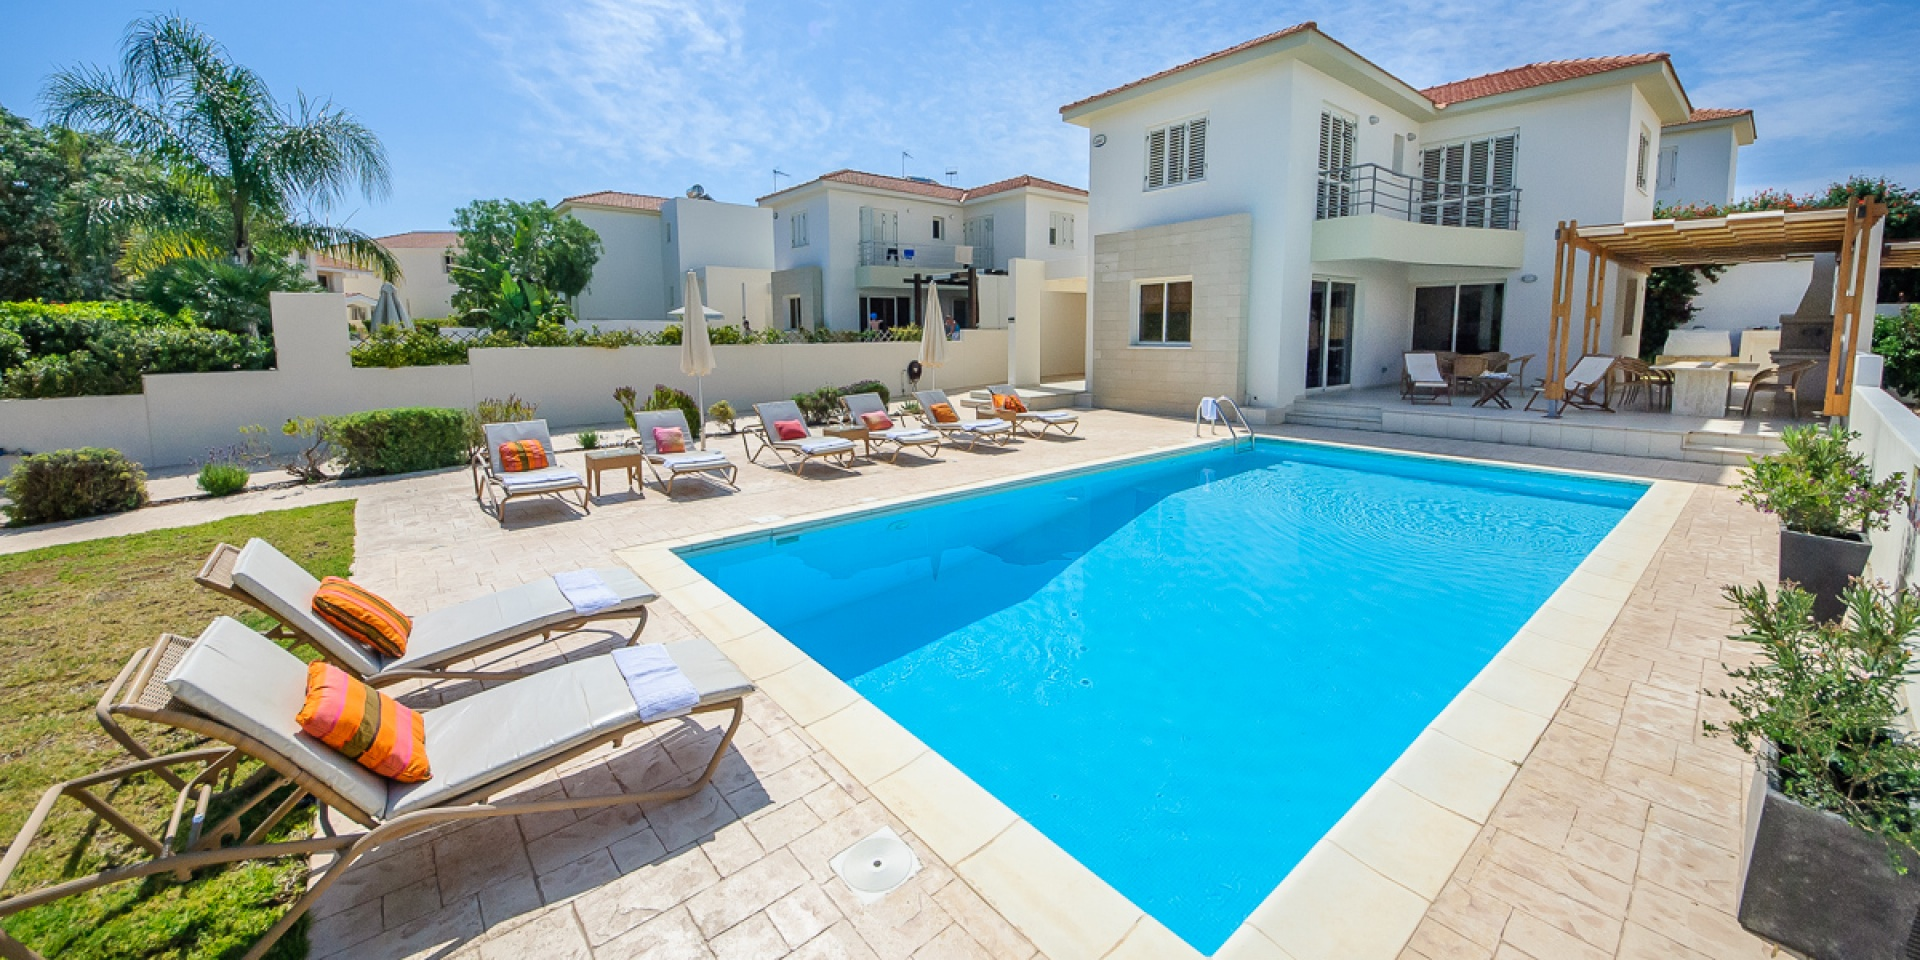 4 Bed Short Term Rental Villa Kapparis